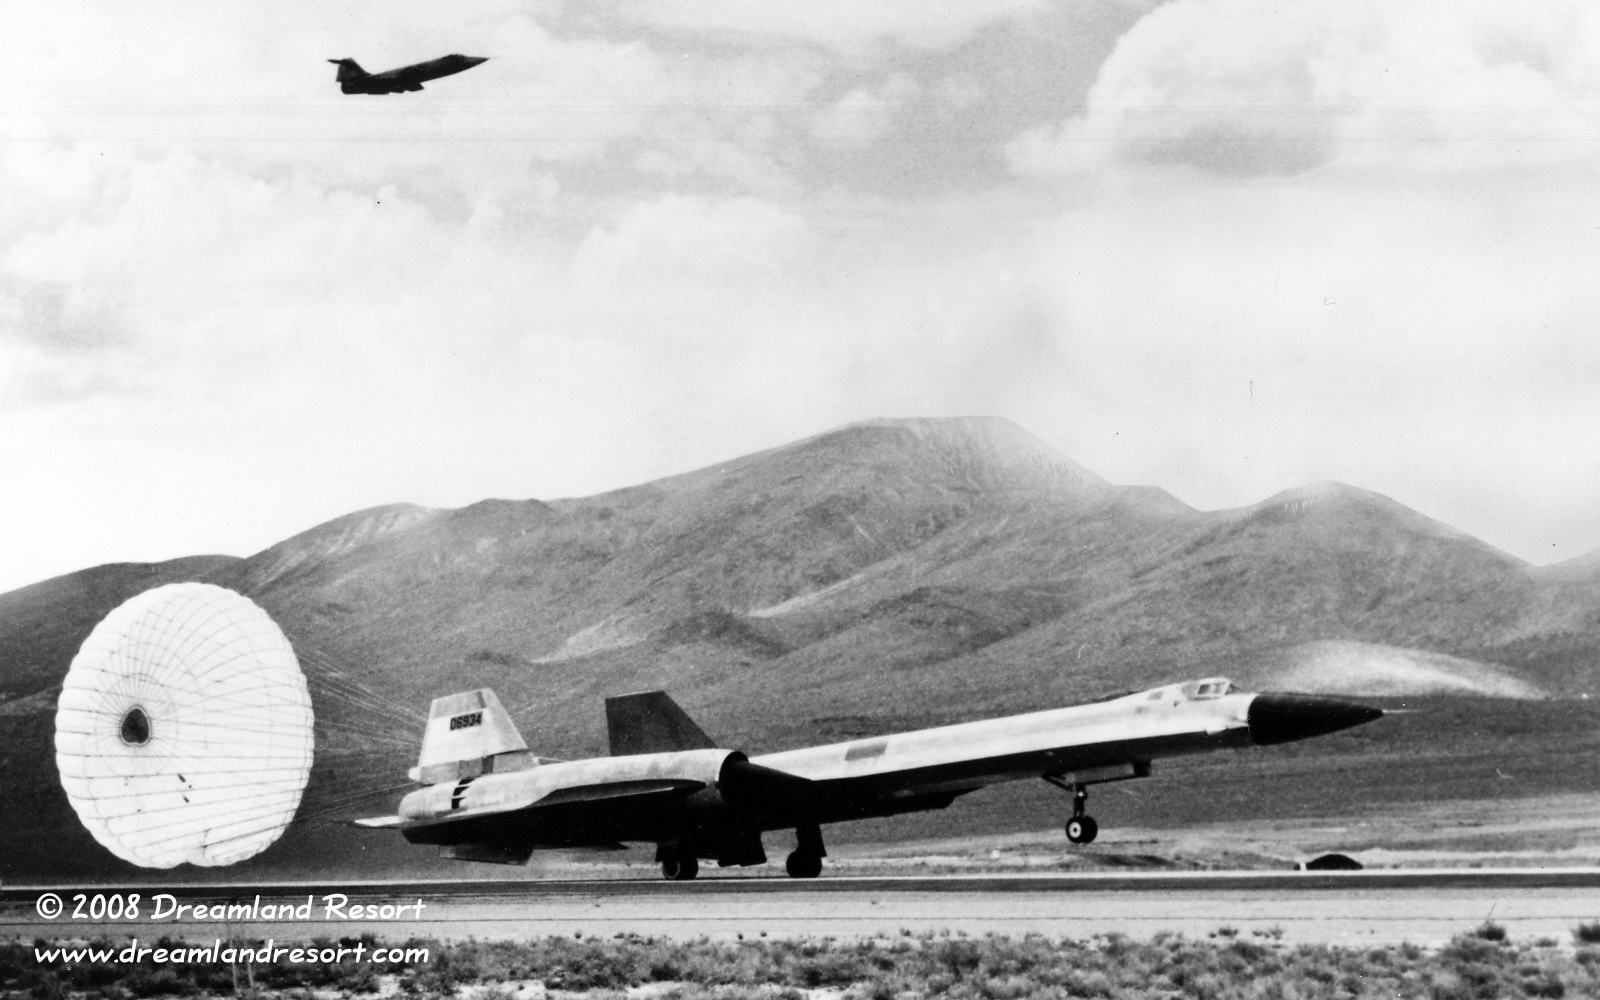 Oxcart Project Yf 12 934 First Landing Yf 12 Was The Public Mach 3 Fighter Program Disguise For The Lockheed Sr 71 Blackbird Lockheed Sr 71 Sr 71 Blackbird